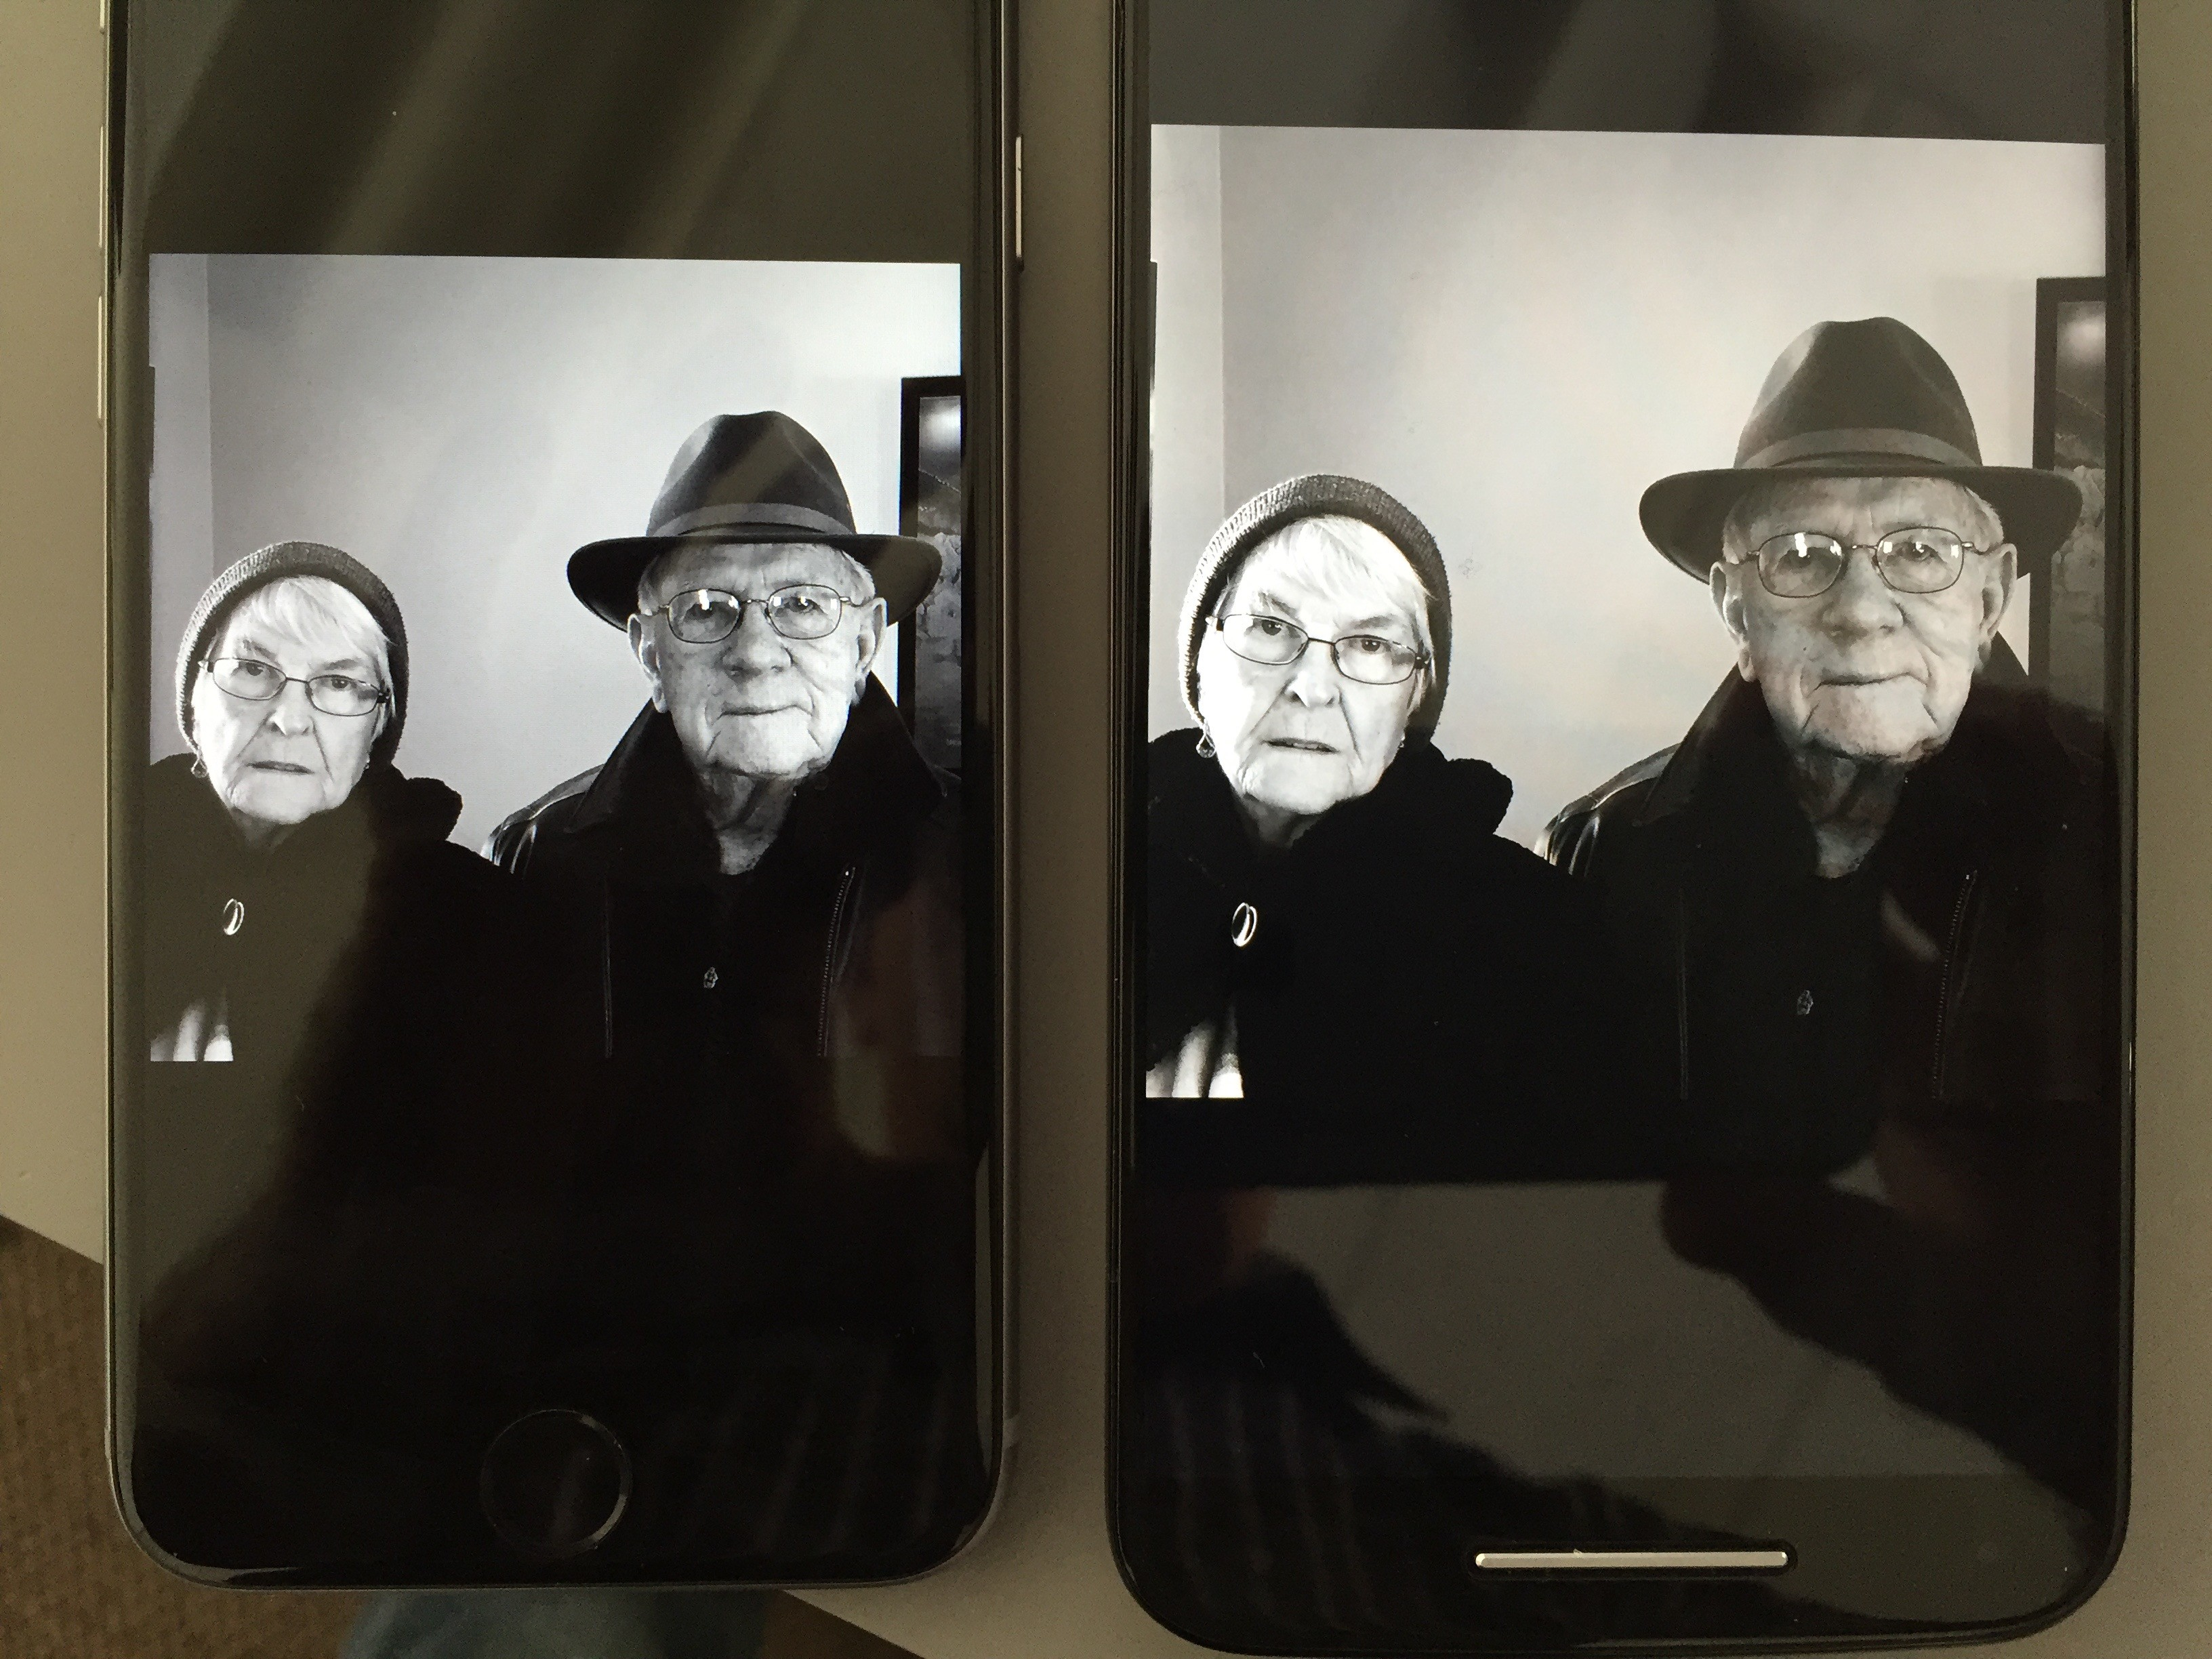 Black and white image displayed on the iPhone 6s (left) and on the Moto Pure (right).